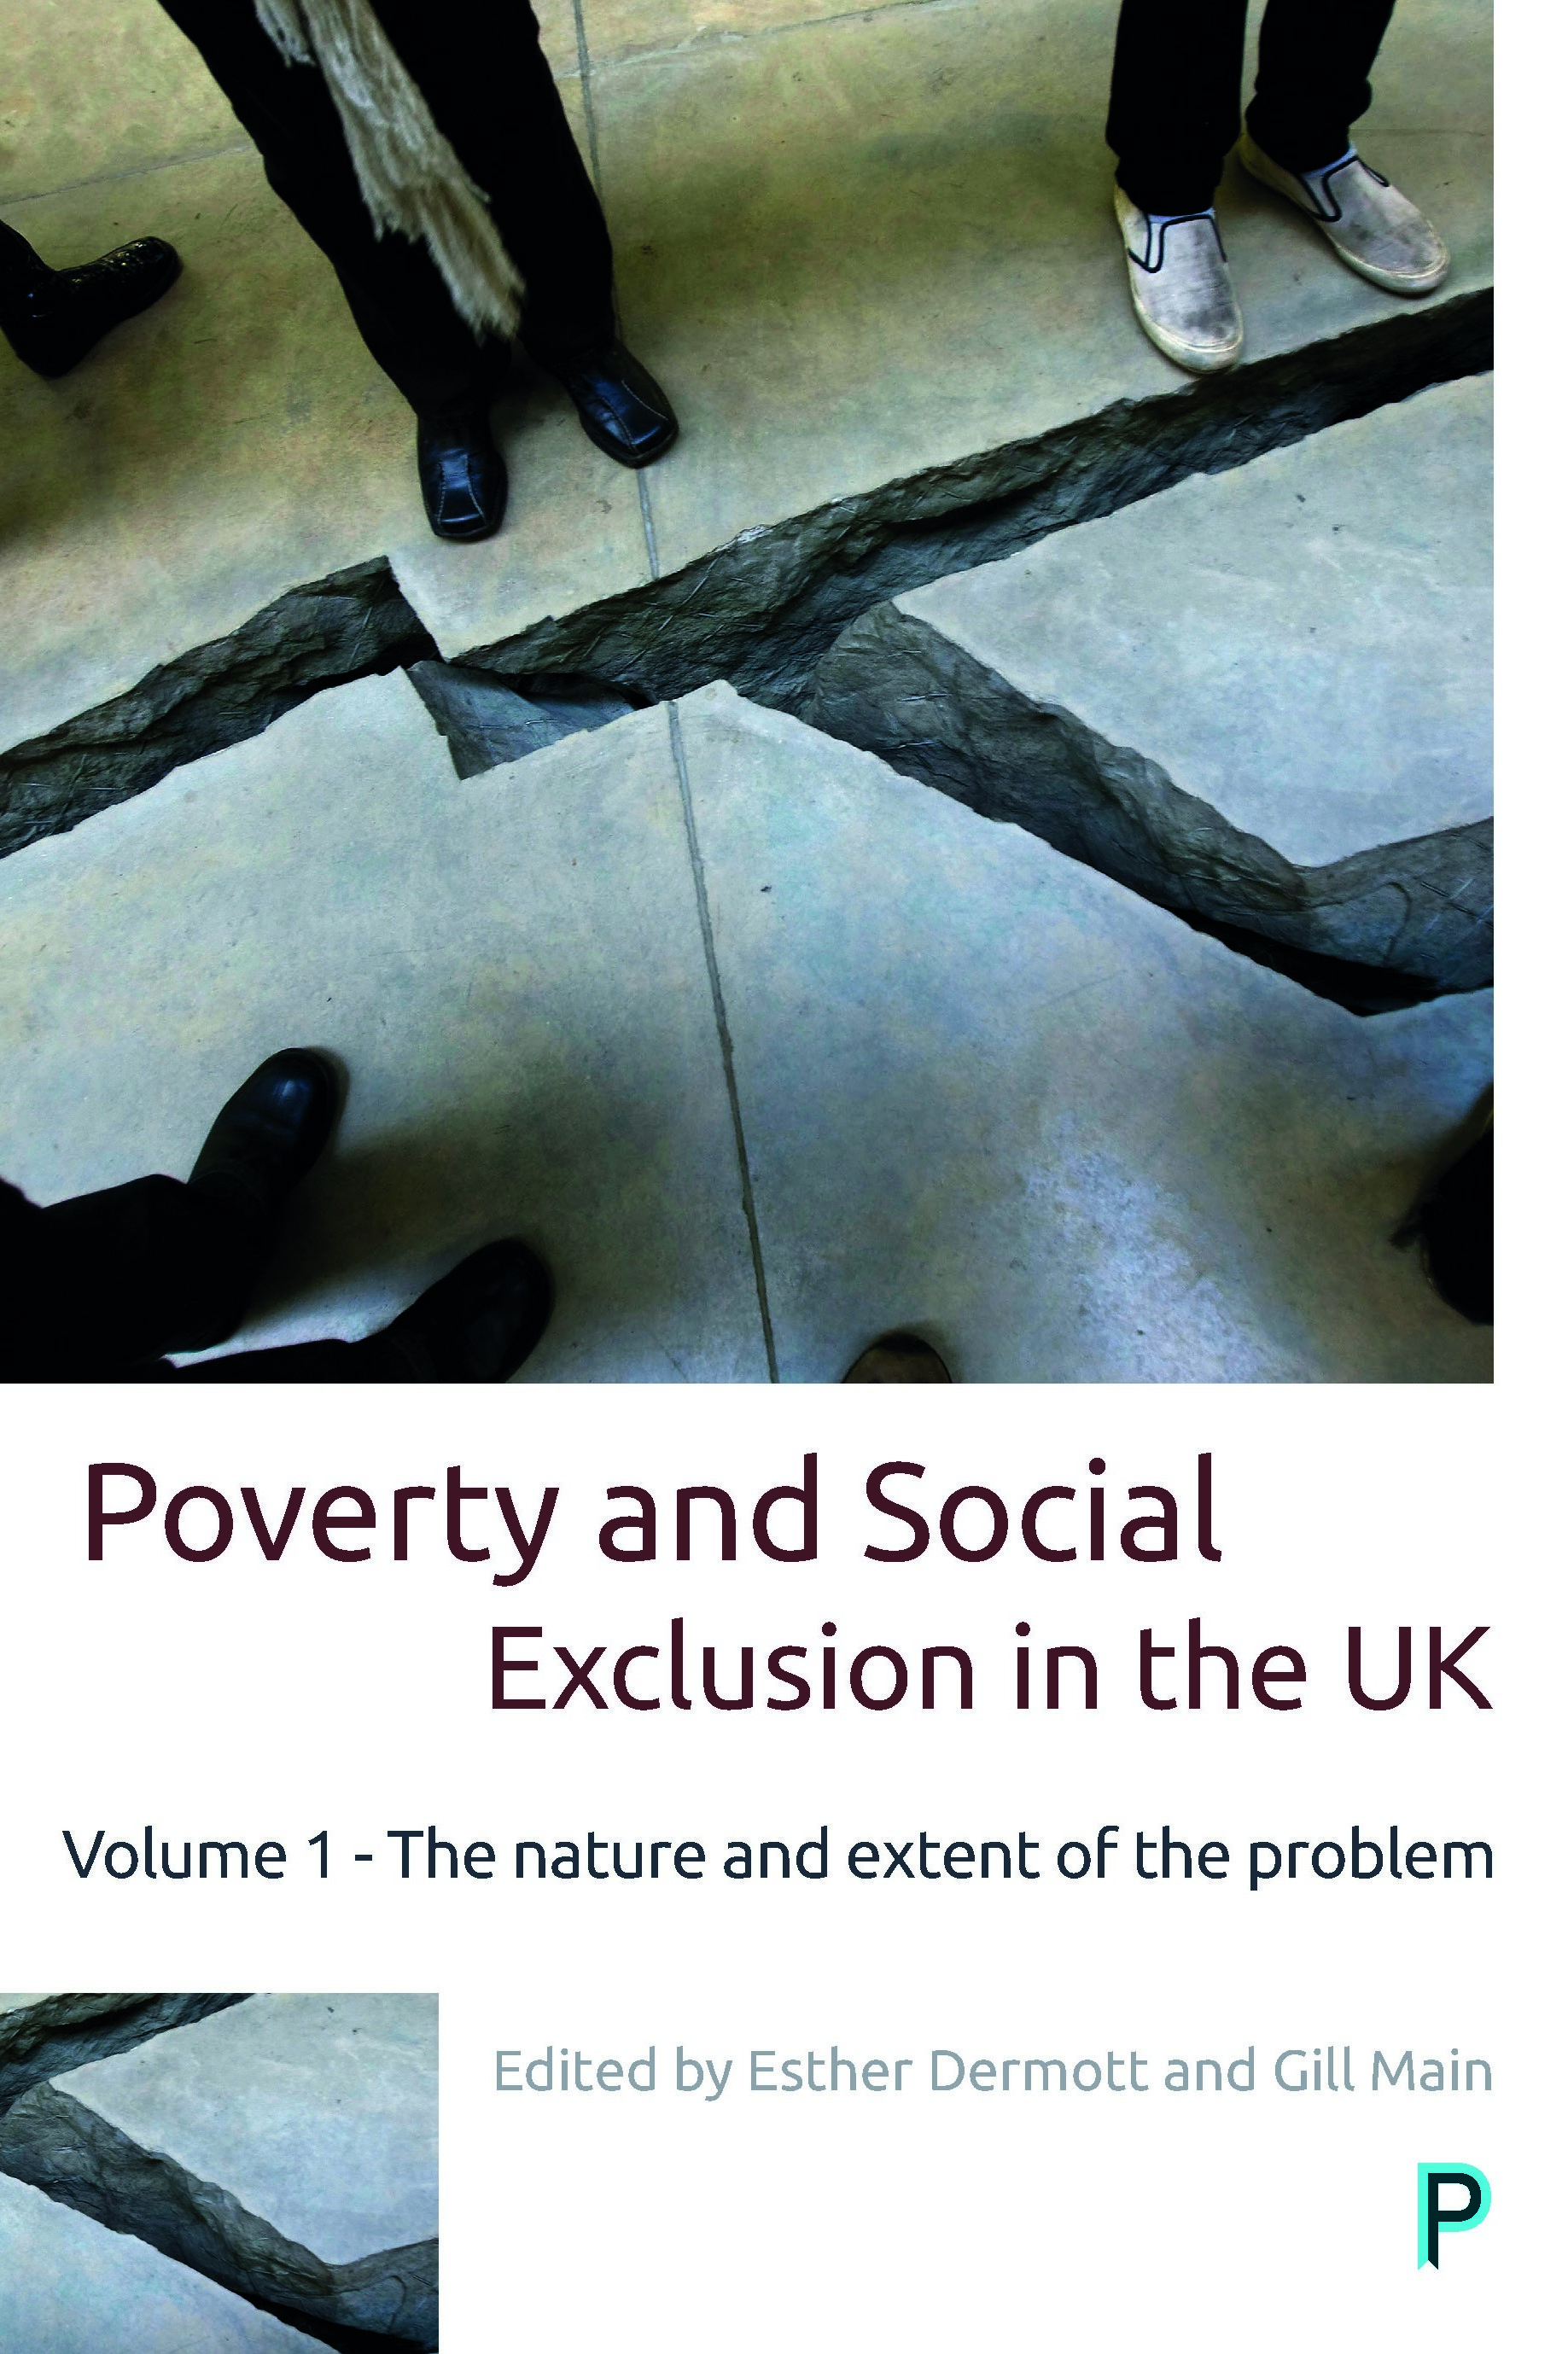 1 what is 'social exclusion' and 'the subjects were selected on the basis of exclusion and inclusion criteria' 'geeks and freaks become what they are negatively, through their exclusion by others' 'i wasn't sure whether the issue was one of social privilege or gender exclusion, or both'.